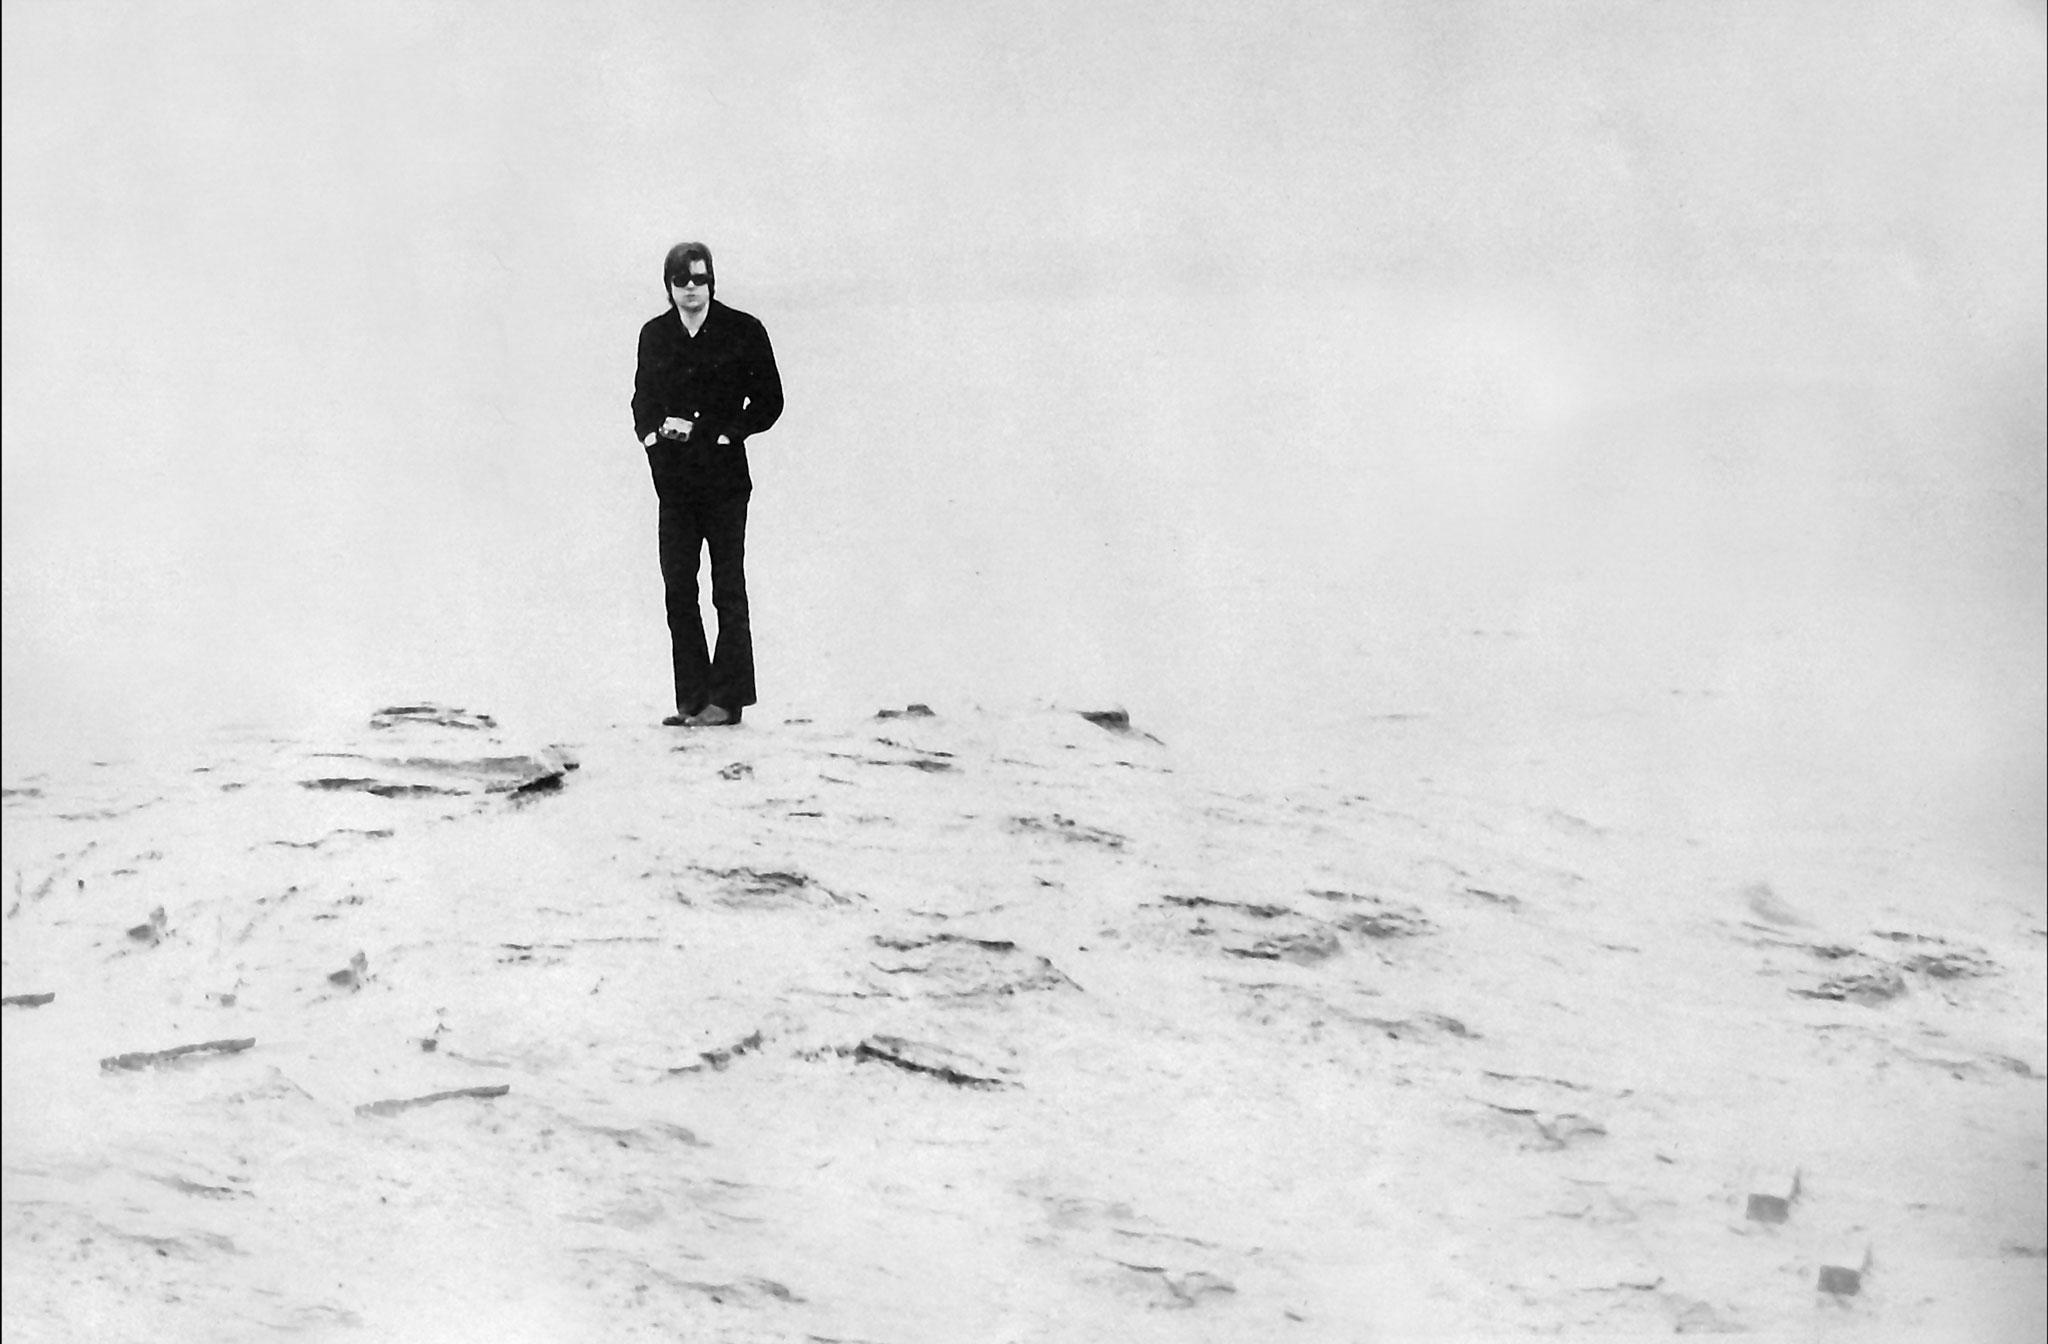 black and white: a figure wearing dark clothes stands on the edge of small outcrop of land with water behind.